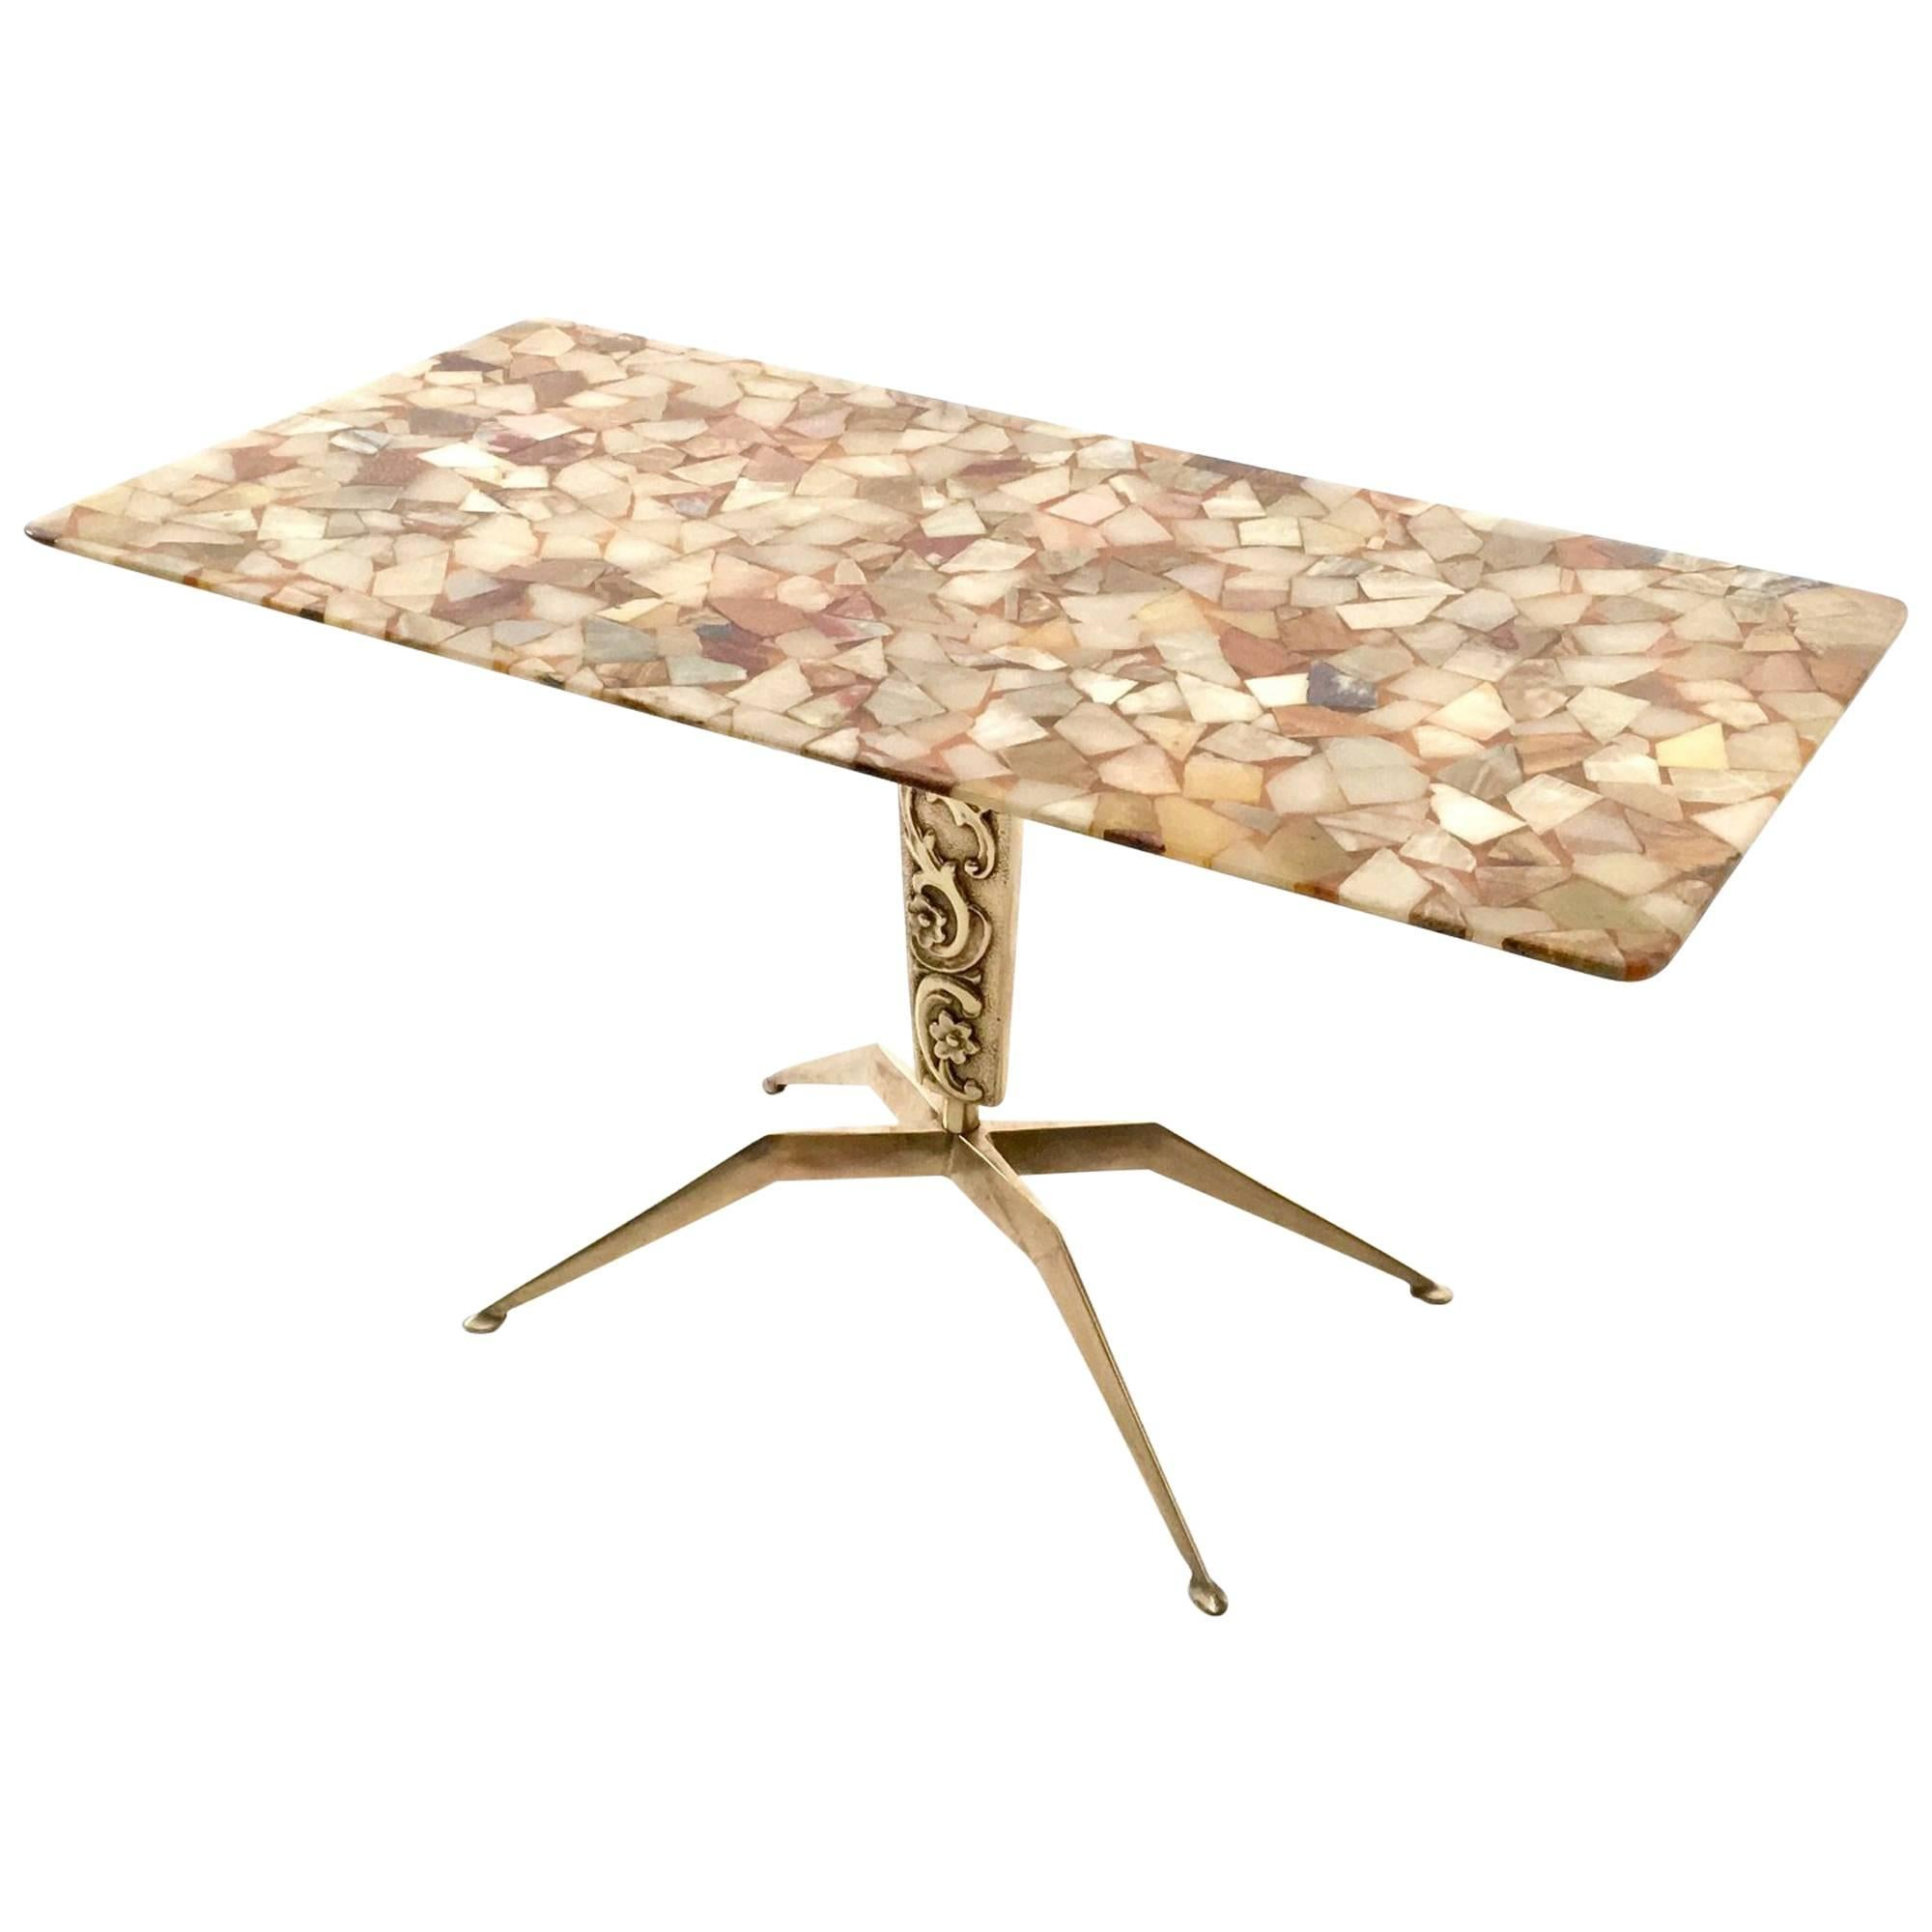 Bronze Coffee Table with a Marble Top, Italy, 1950s